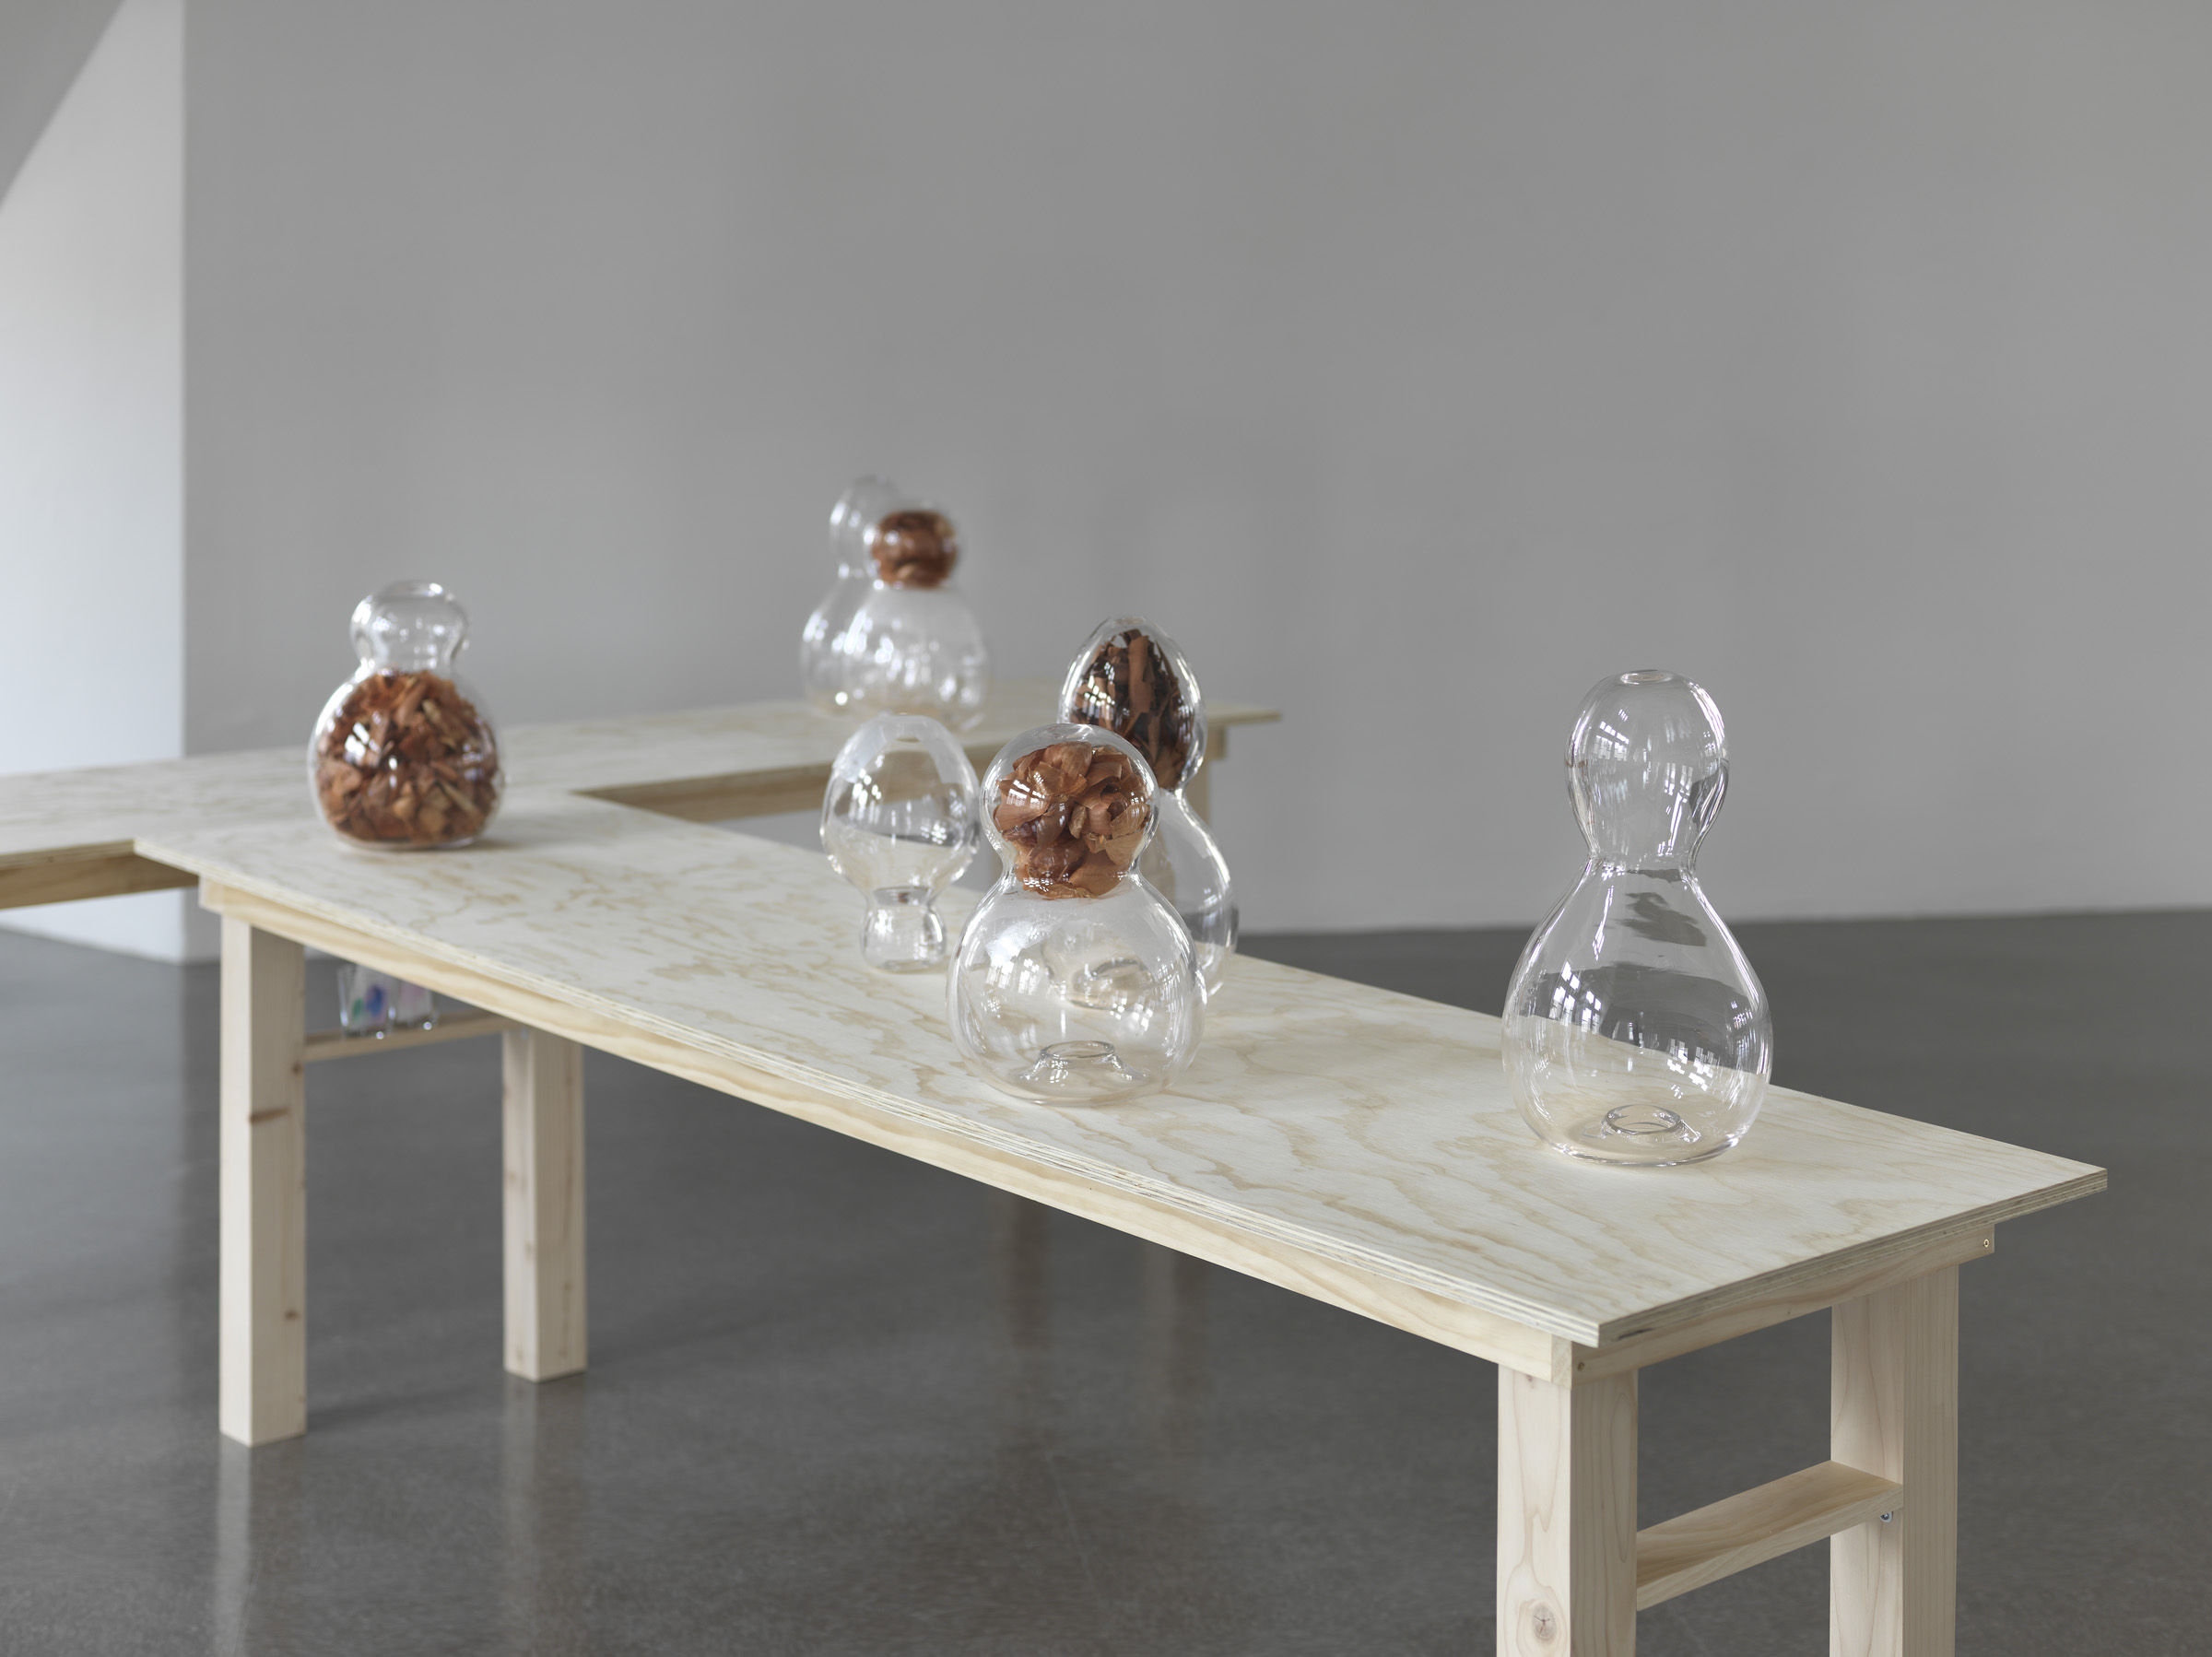 Ambic 2014 Glass, parafilm, onionskins, madrona bark, chromatography paper and samples. Tables and/or instructions for tables 120 x 244 x 244 cm / 47.2 x 96 x 96 in